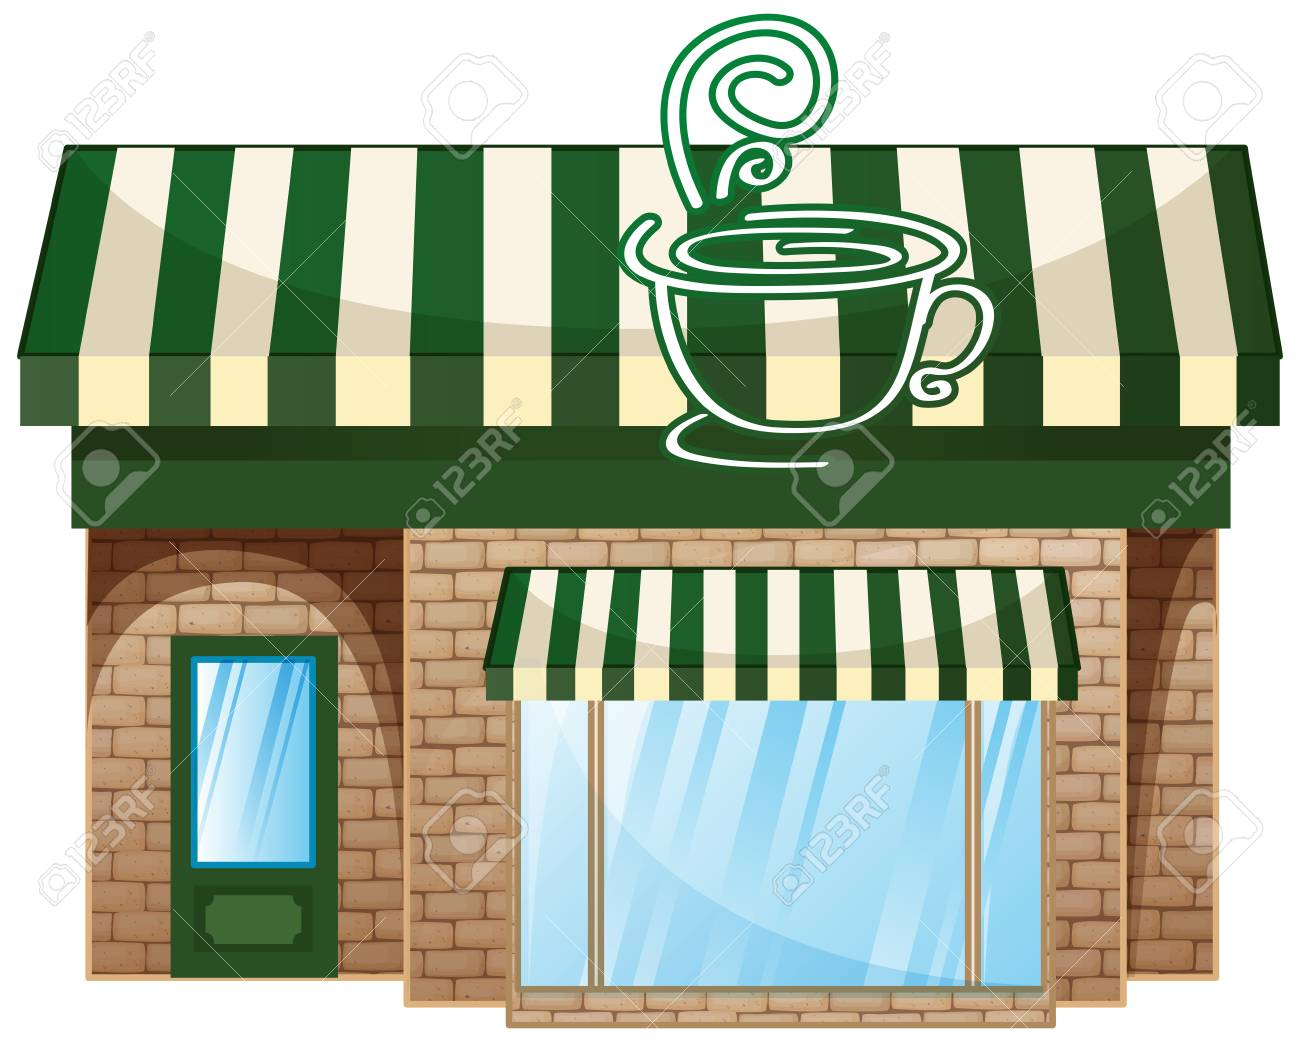 hight resolution of coffee shop with green roof illustration stock vector 74345593